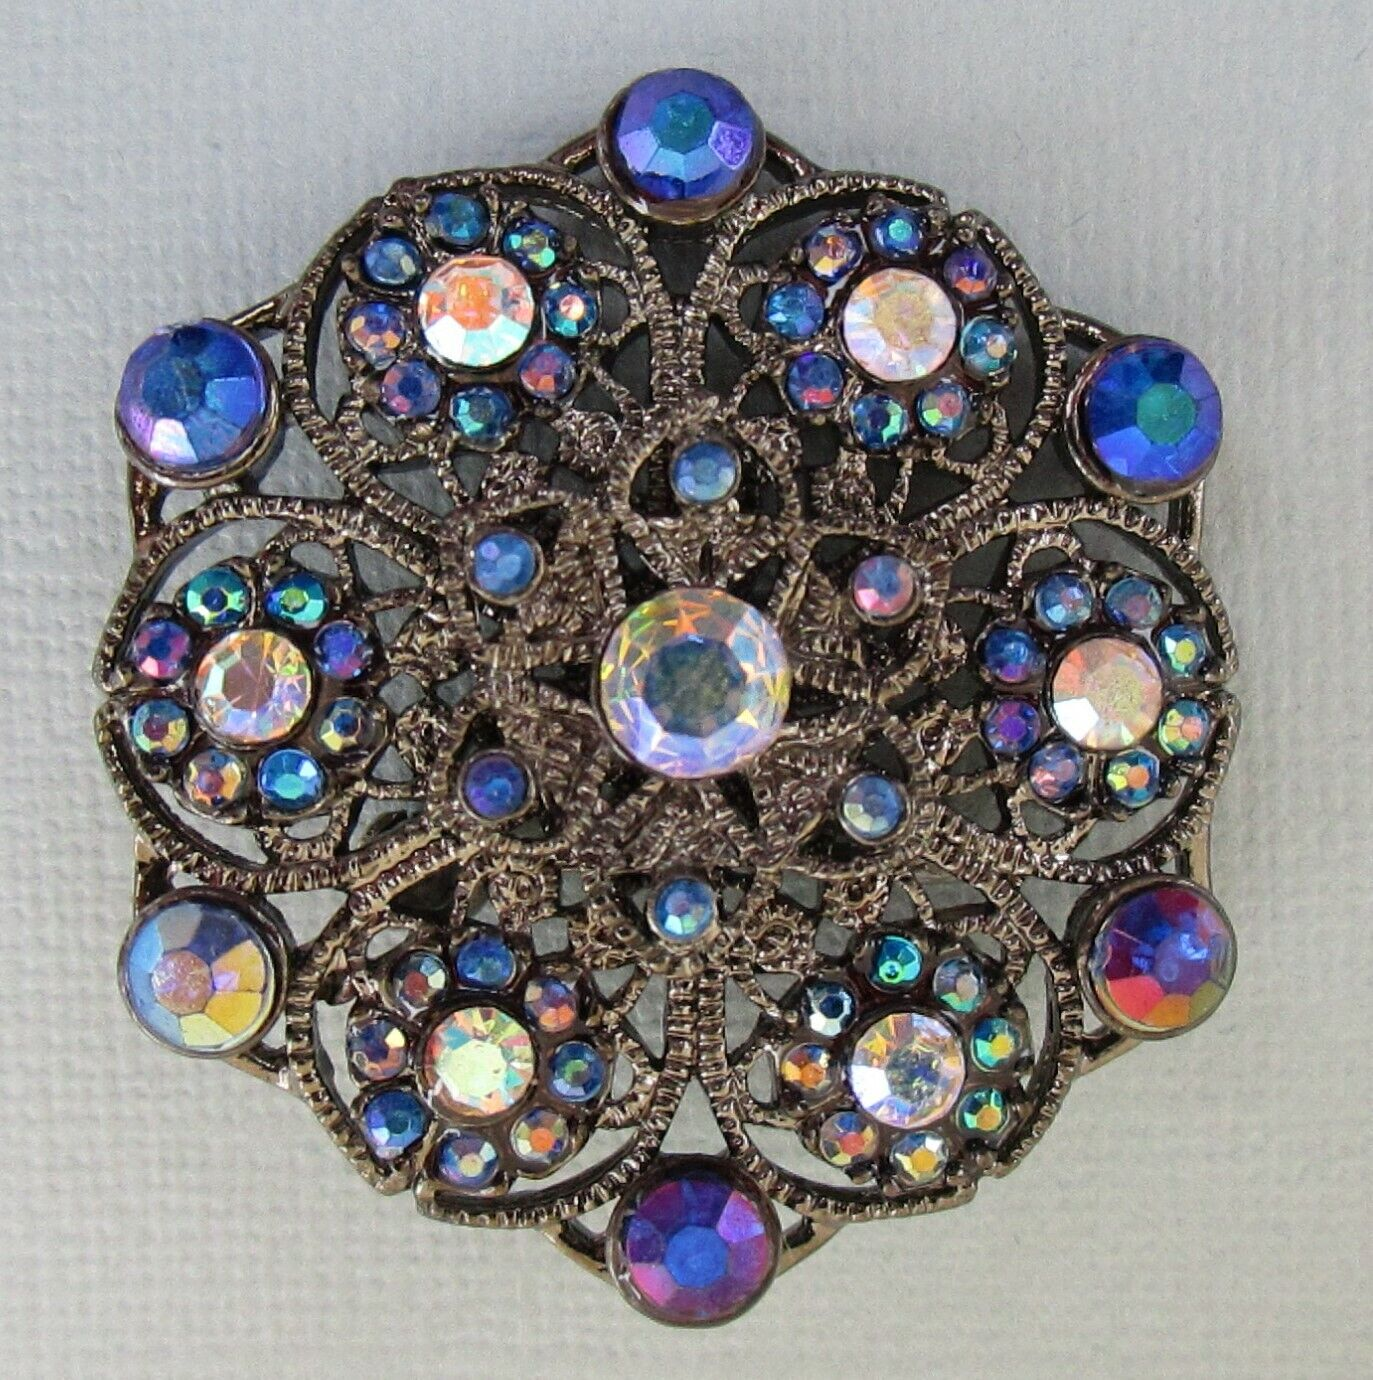 Vintage AB Peacock Blue Flower Iridescent Pin Lucite Brooch - $14.99